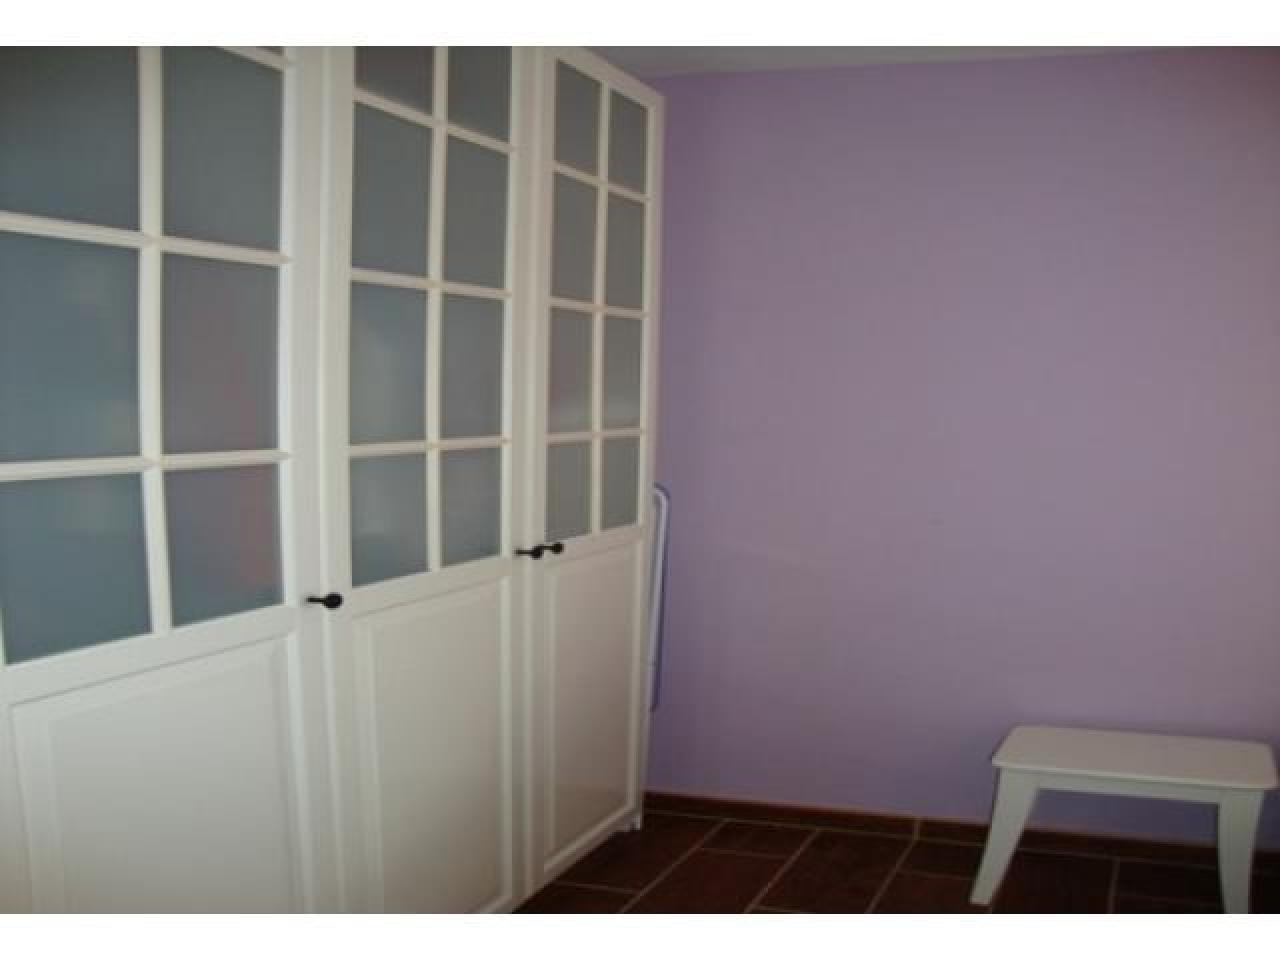 Real estate in Tenerife for sale » #274 - 4